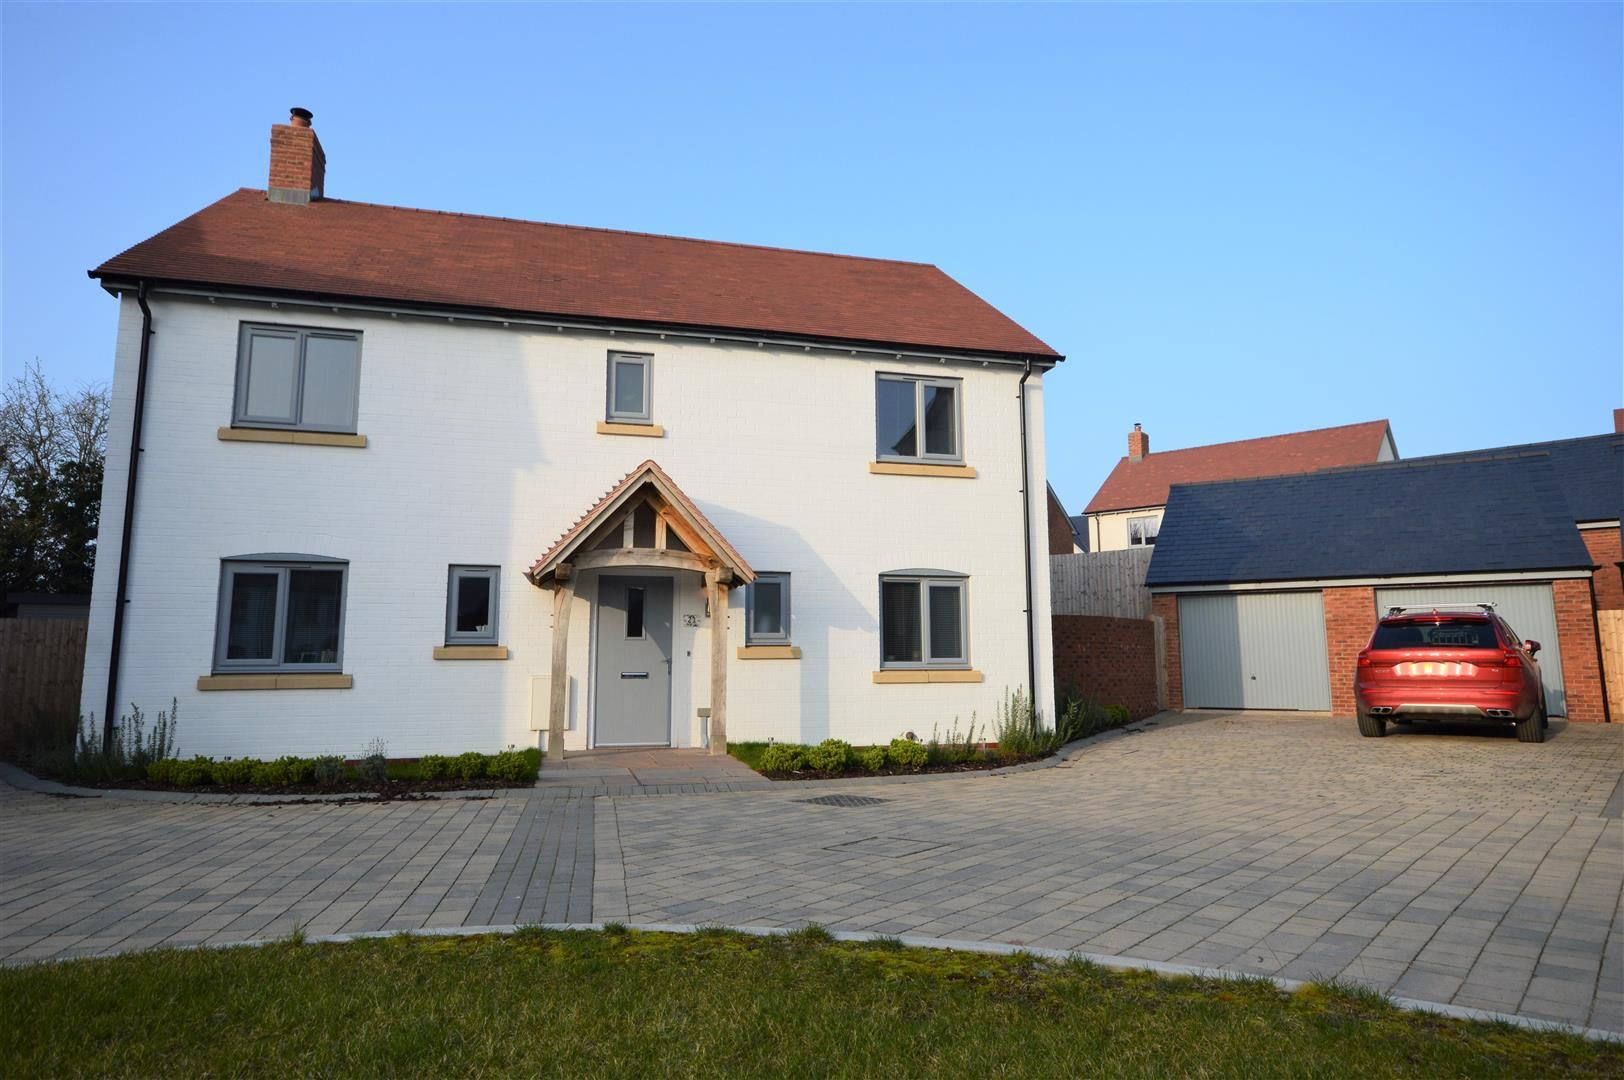 4 bed detached for sale in Weobley  - Property Image 1